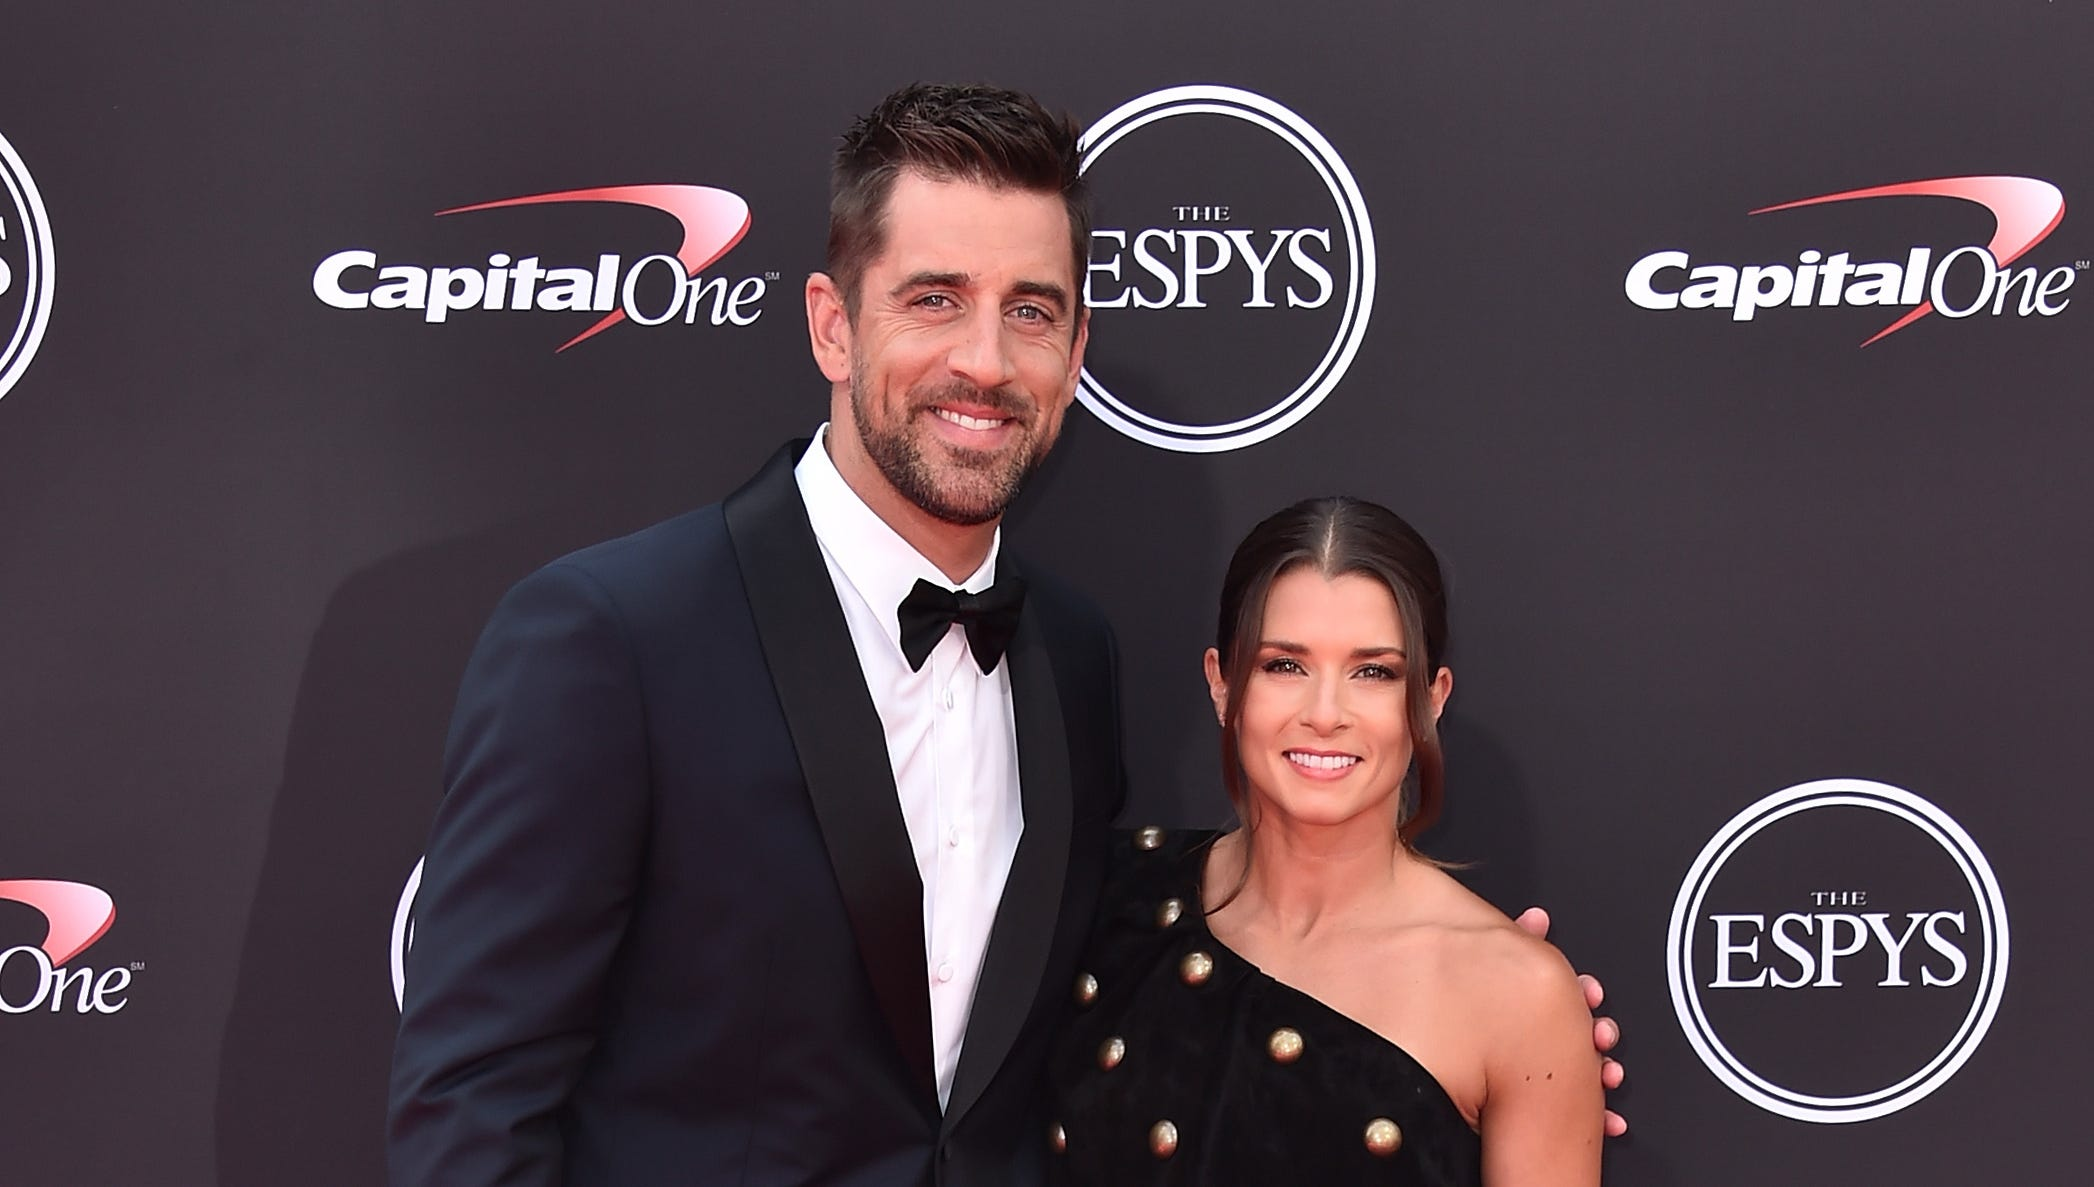 Aaron Rodgers channeled Jim Carrey in 'Dumb and Dumber' when he first met Danica Patrick